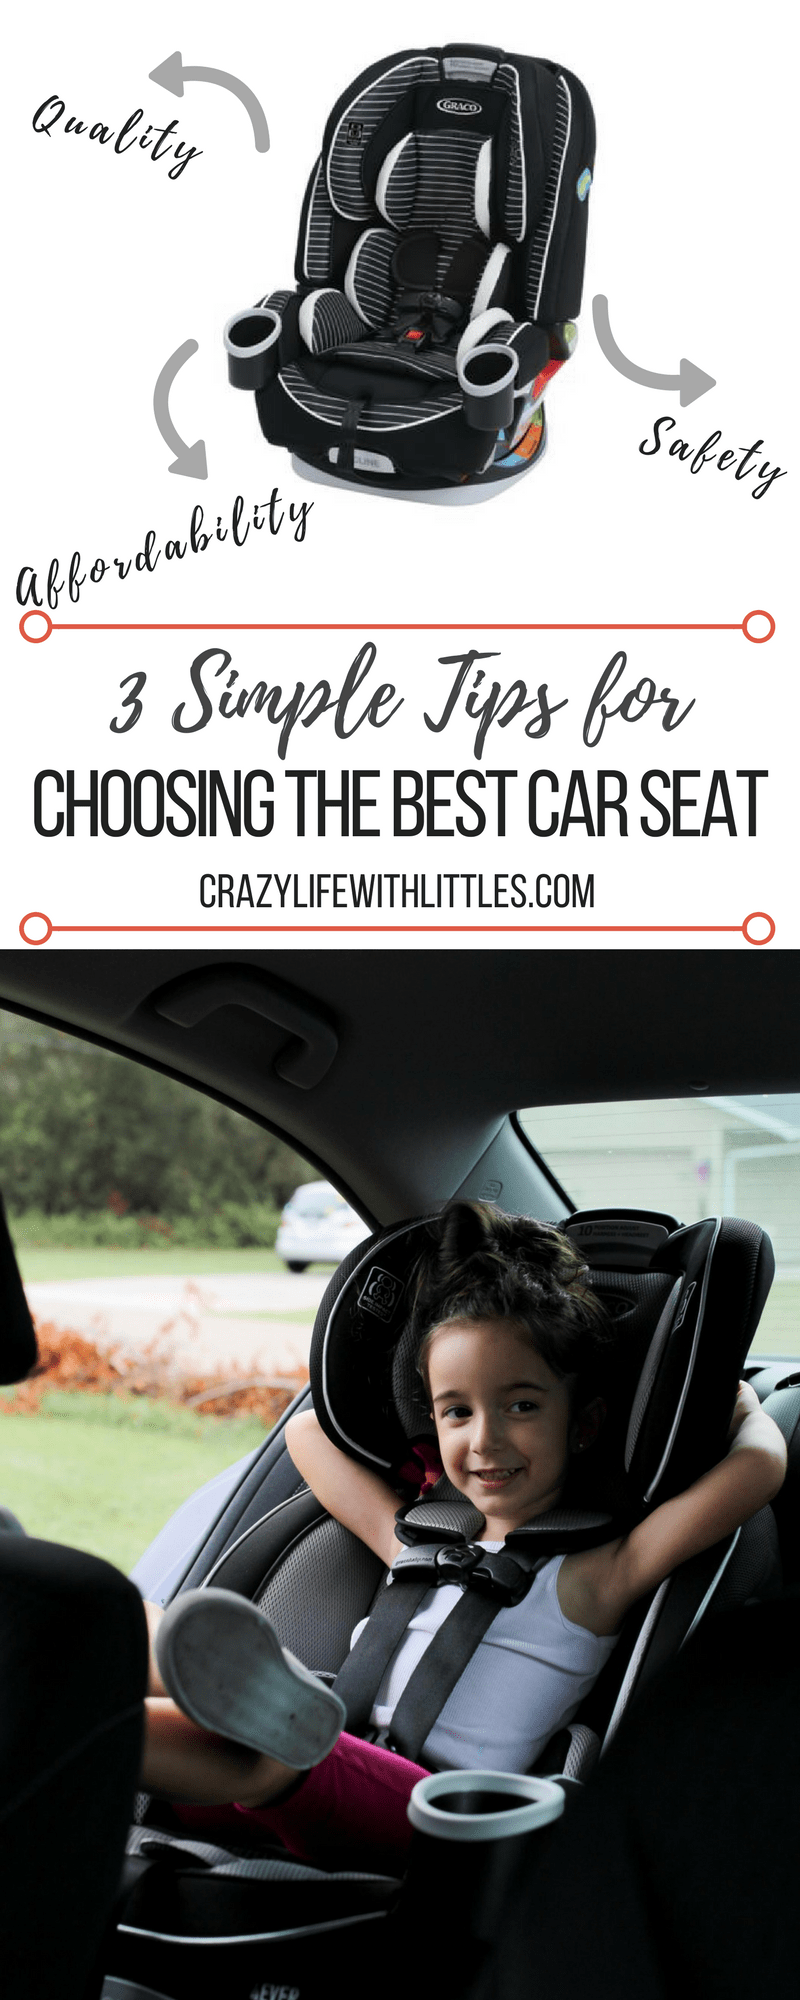 PRACTICAL TIPS FOR SELECTING A CAR SEAT | CRAZY LIFE WITH LITTLES